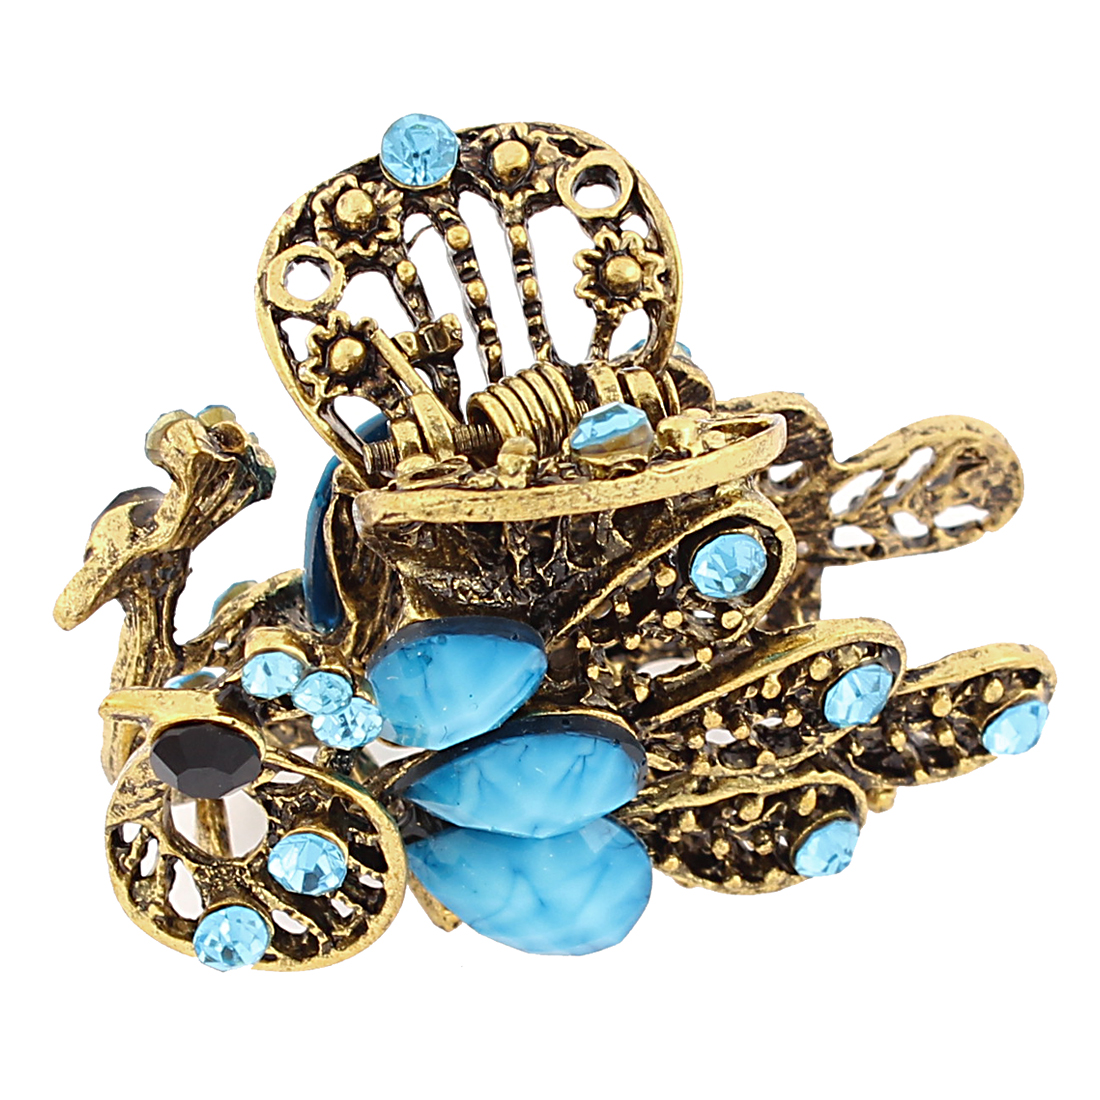 Rhinestone Bling Peacock Design Hair Claw Jaw Clip Hairclip Barrette